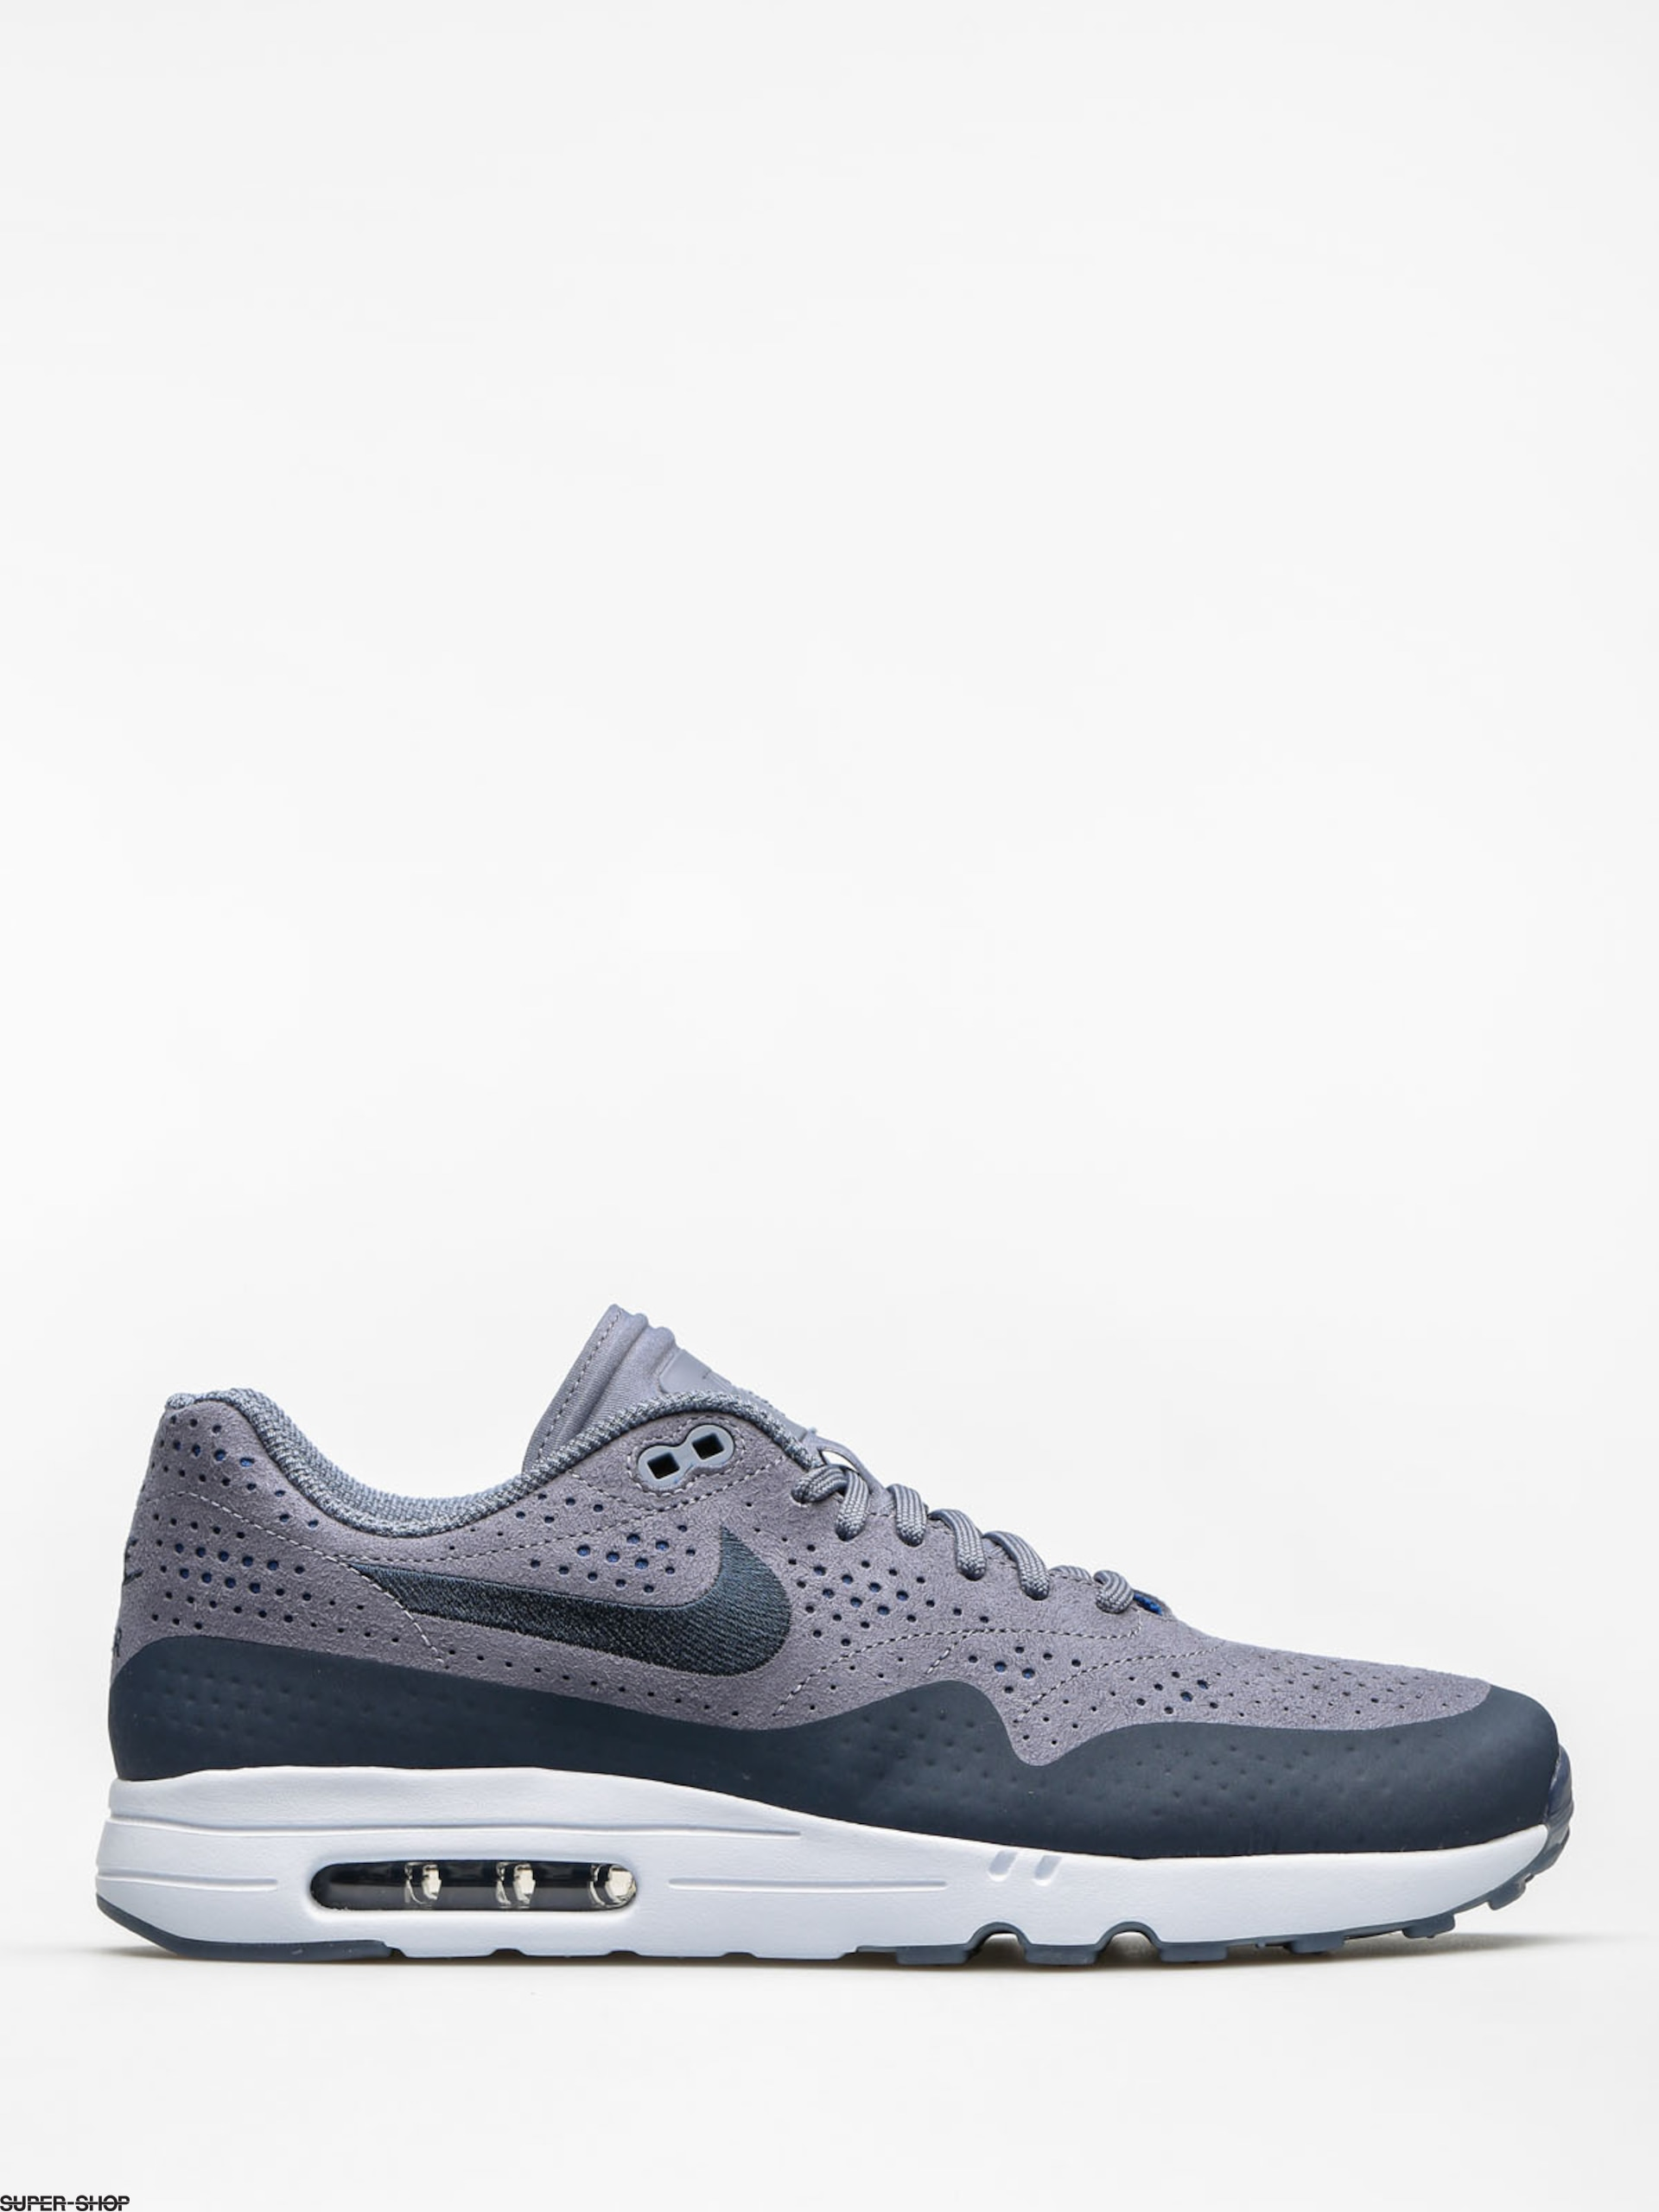 Nike Shoes Air Max 1 (Ultra 2.0 Moire armory blue/armory navy blue jay)